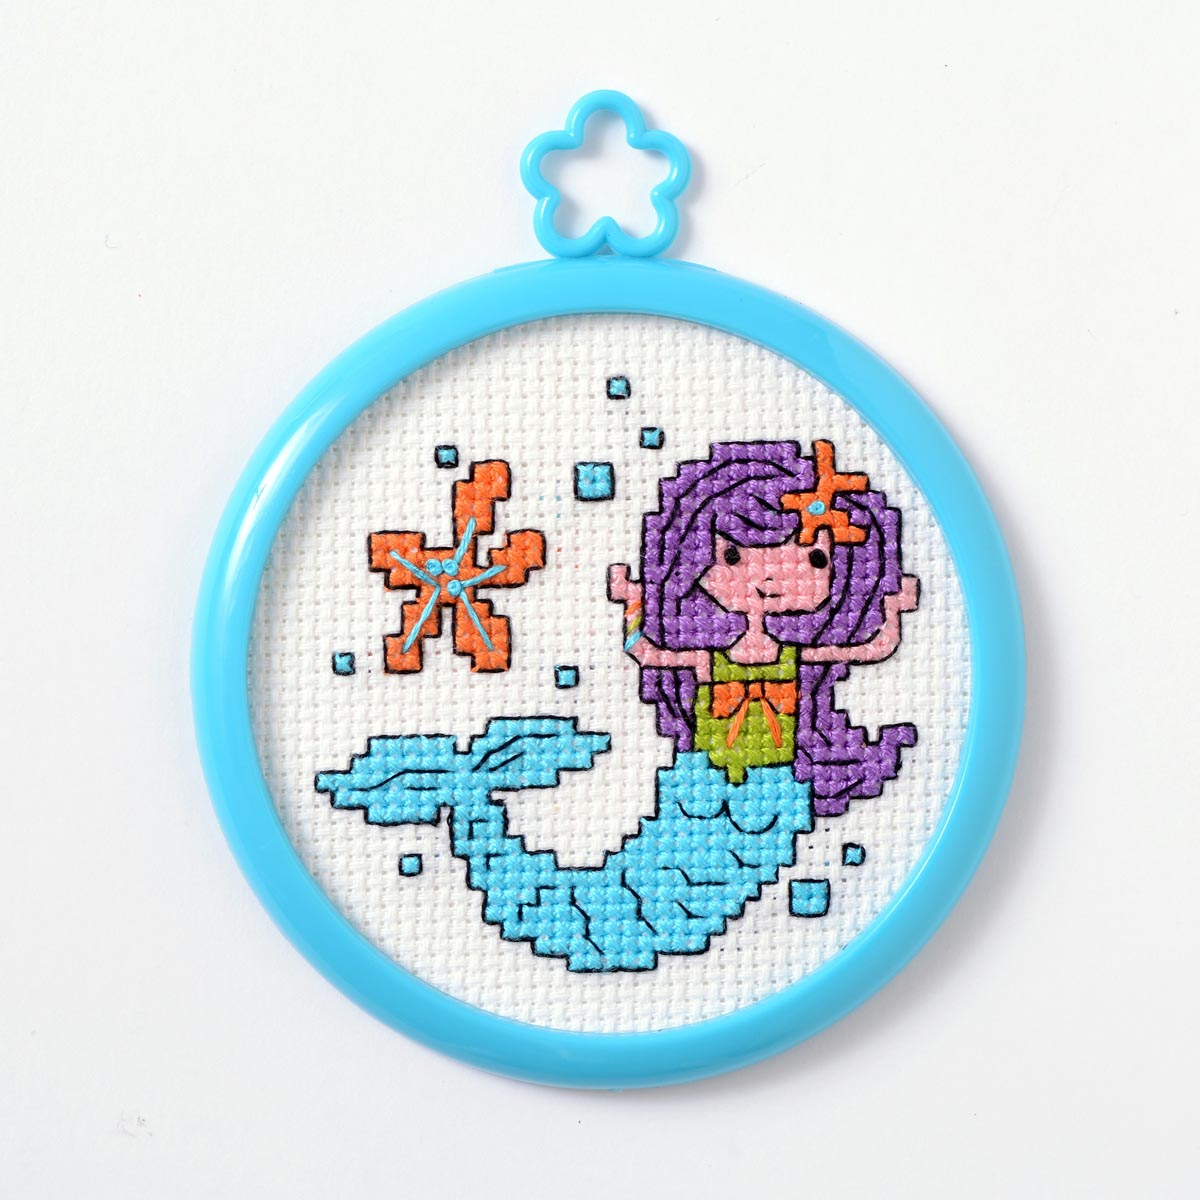 Bucilla ® My 1st Stitch™ - Counted Cross Stitch Kits - Mini - Mermaid